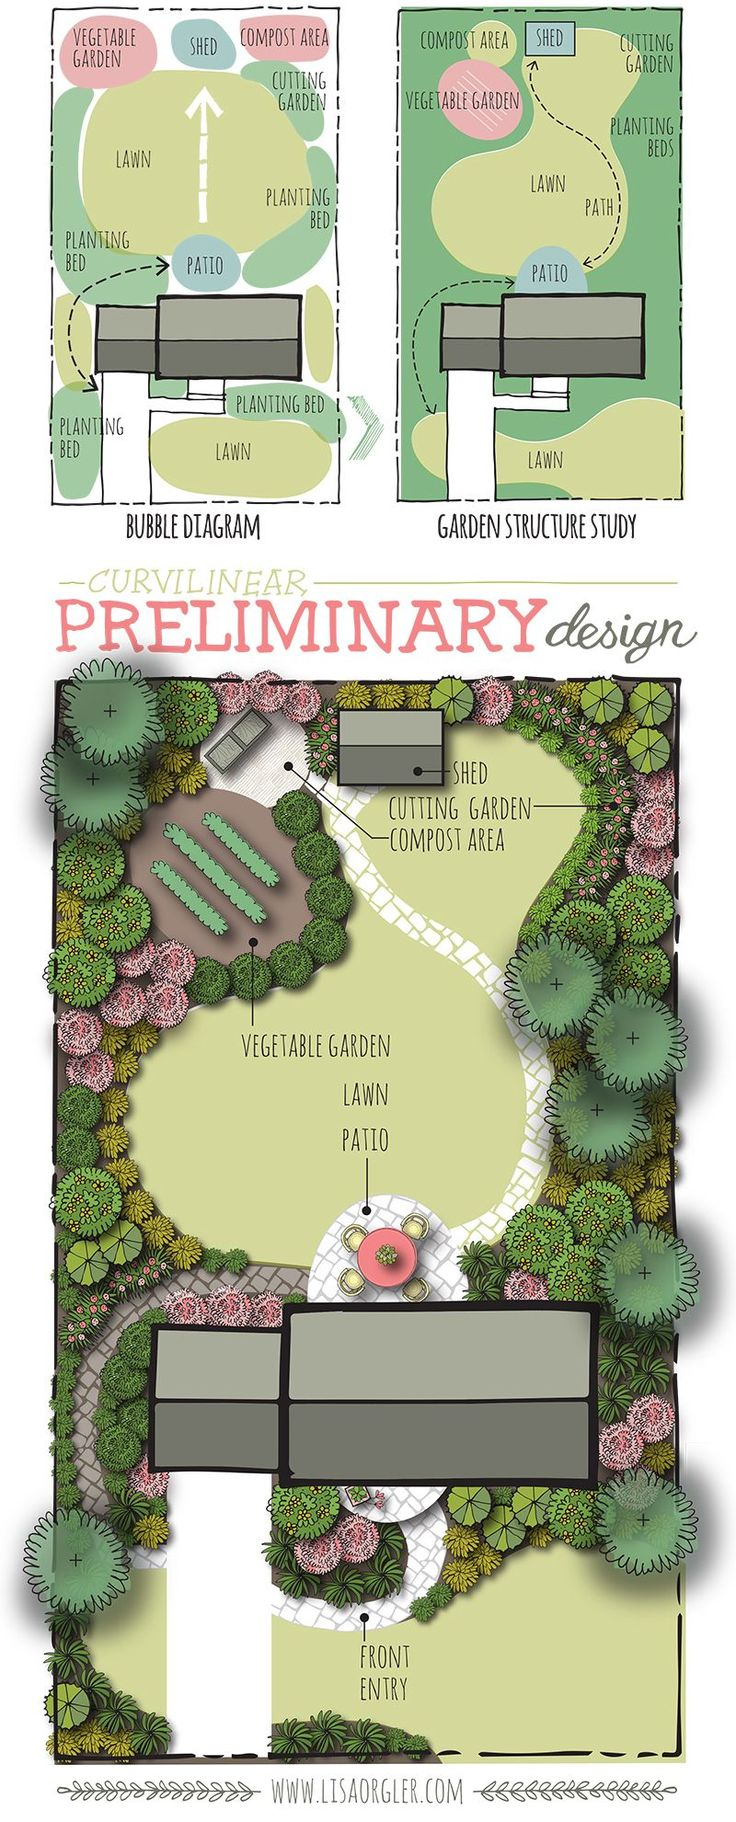 How To Design A Garden classy ideas how to design a garden modest how to design garden Best 25 Garden Design Ideas On Pinterest